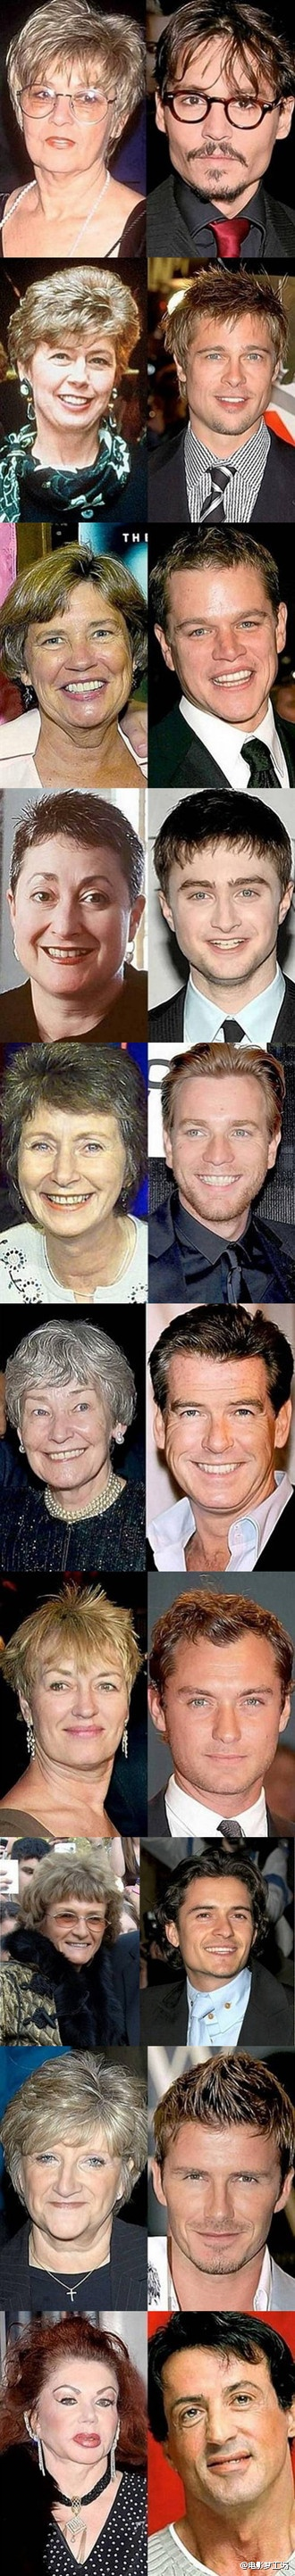 Hollywood actors & their moms